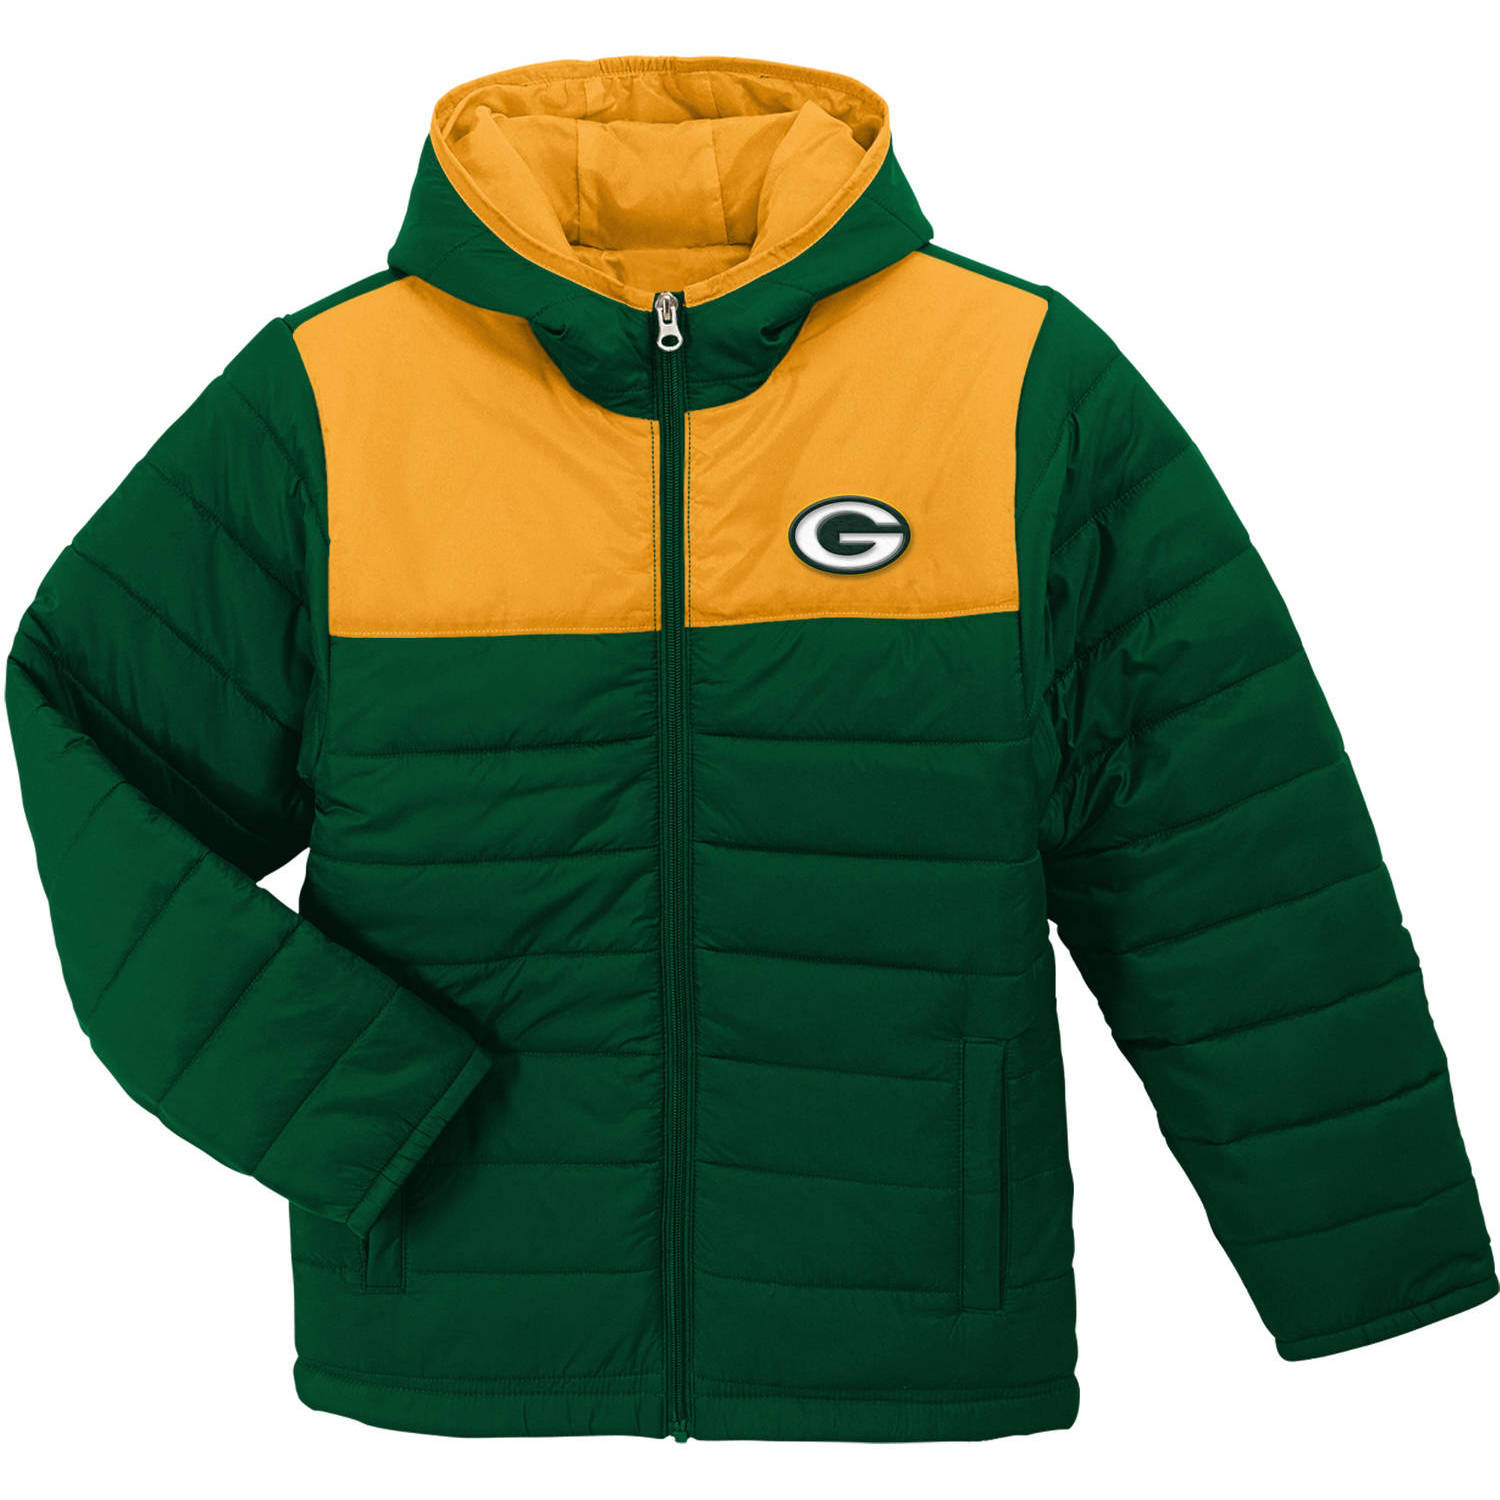 Nfl Green Bay Packers Youth Winter Jacket Walmart Com